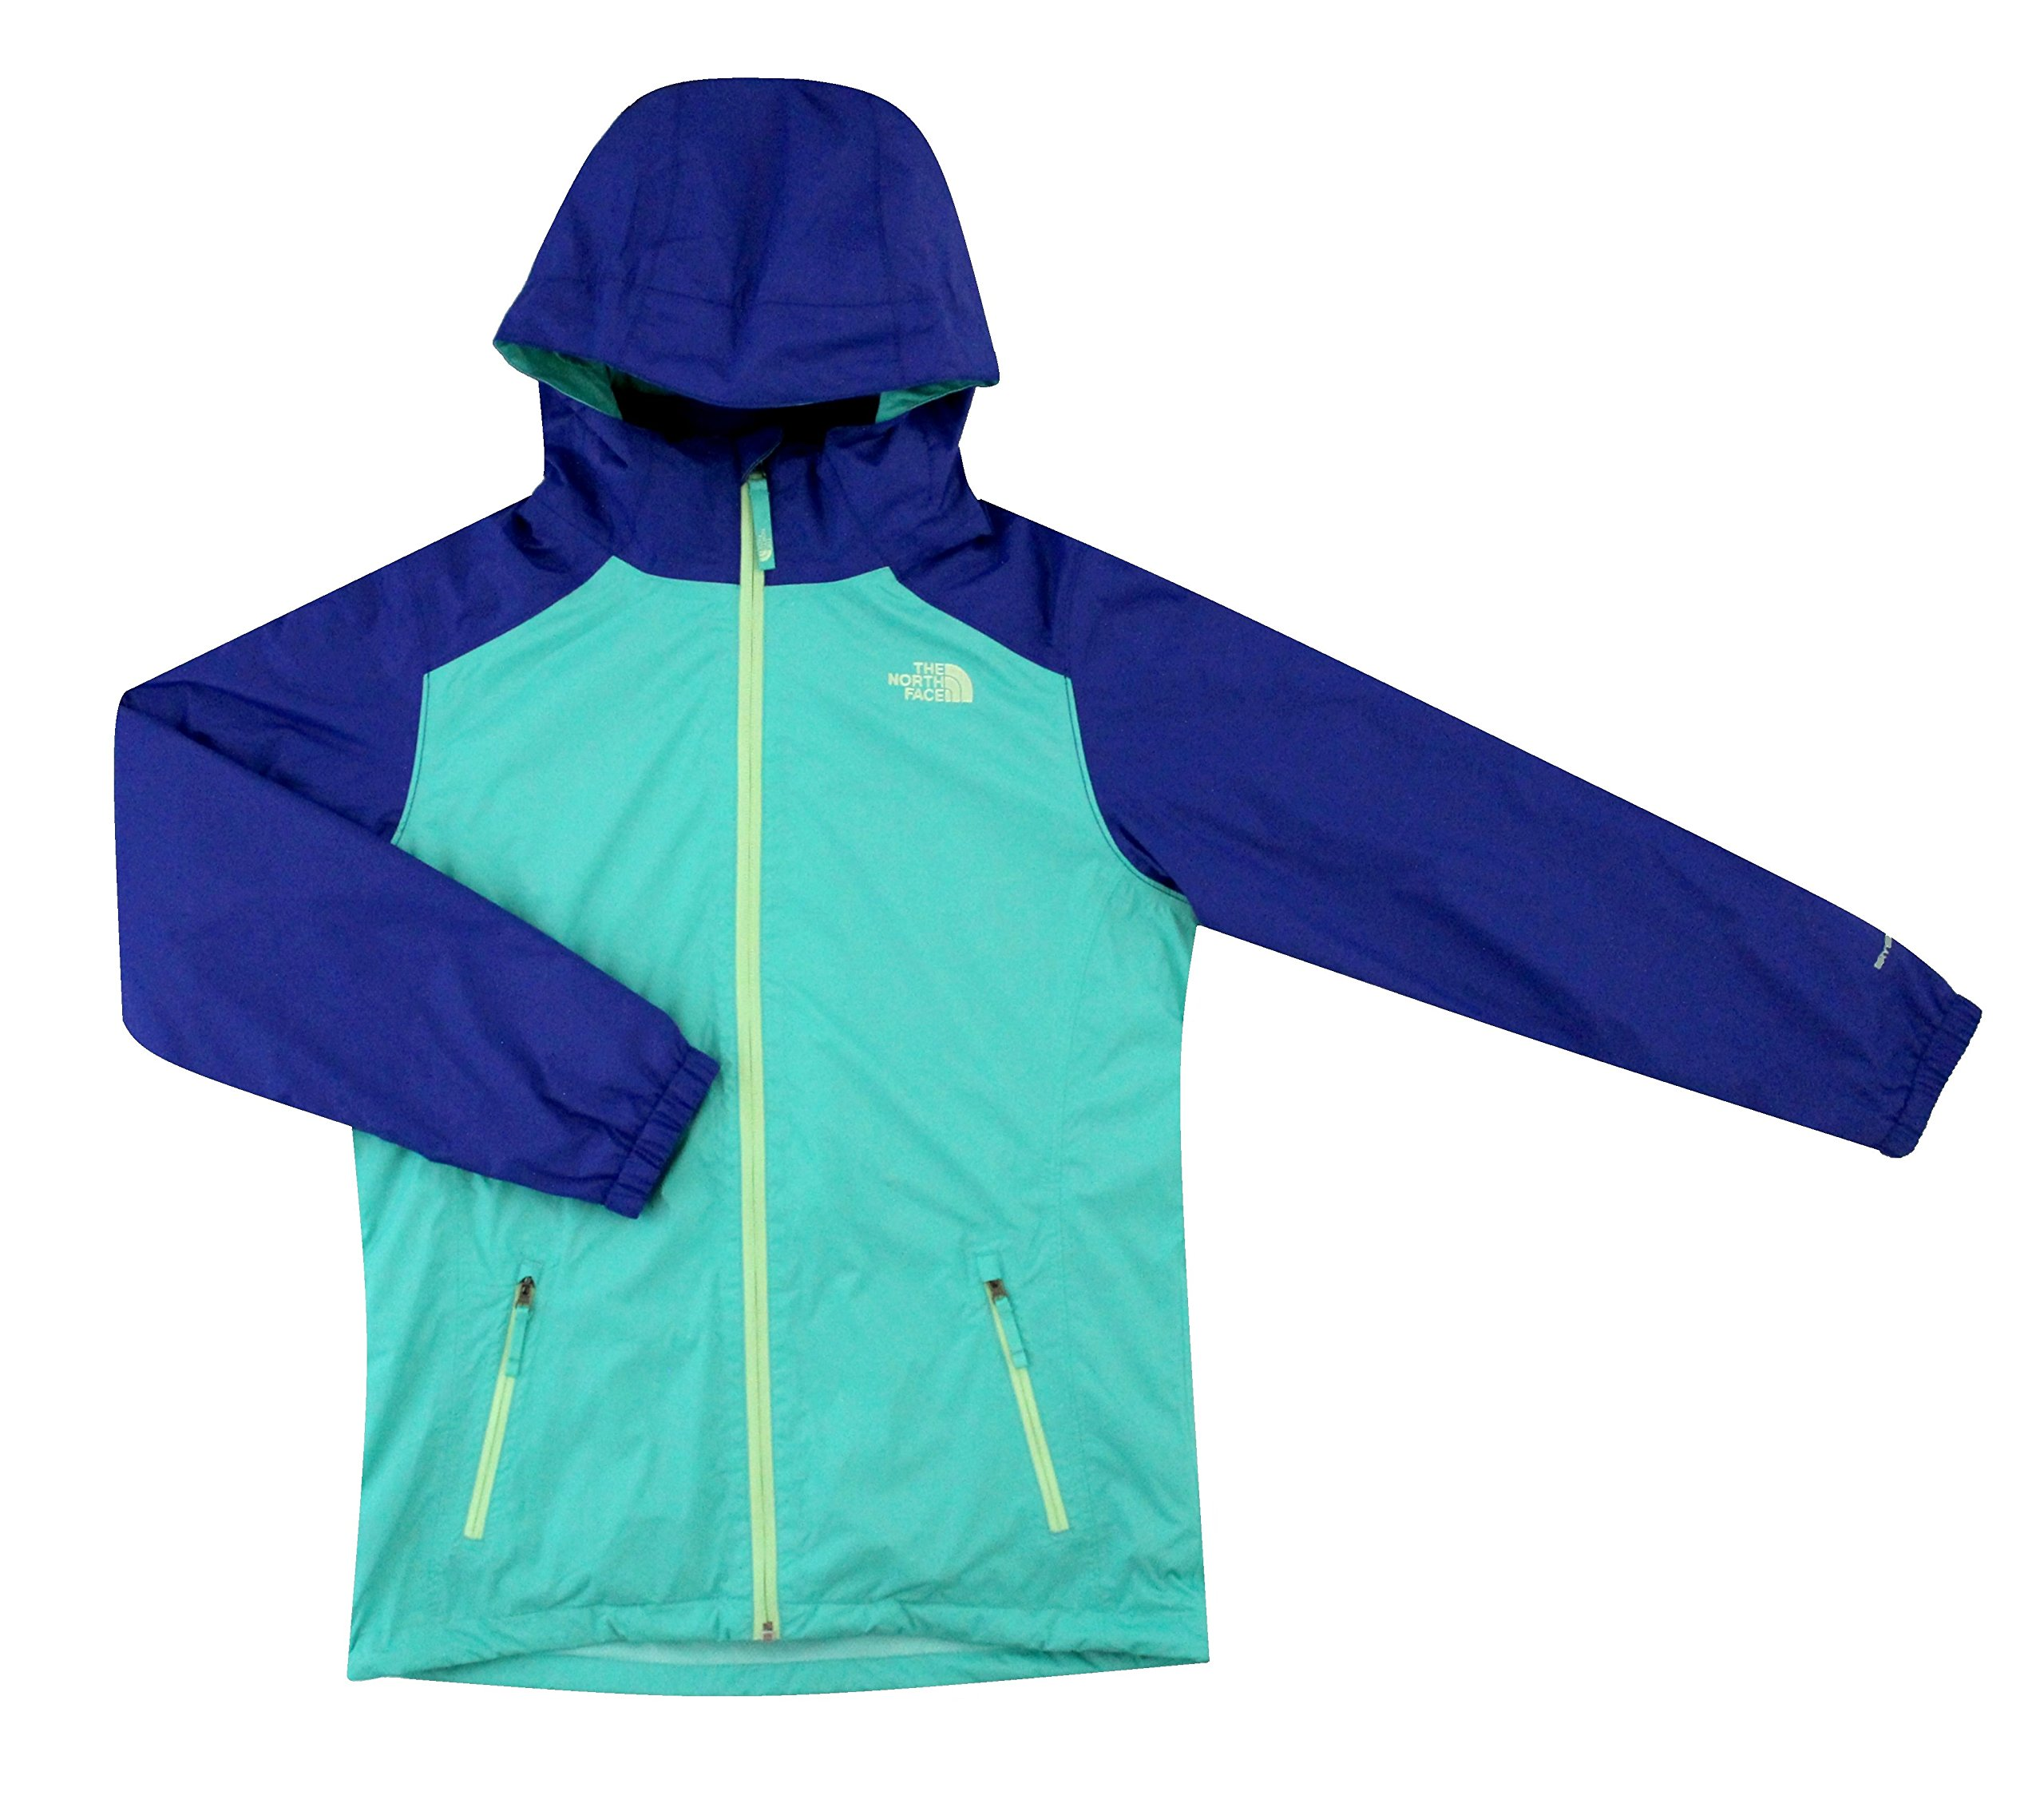 THE NORTH FACE youth girls MOLLY TRICLIMATE JACKET (S 7/8, RETRO GREEN) by The North Face